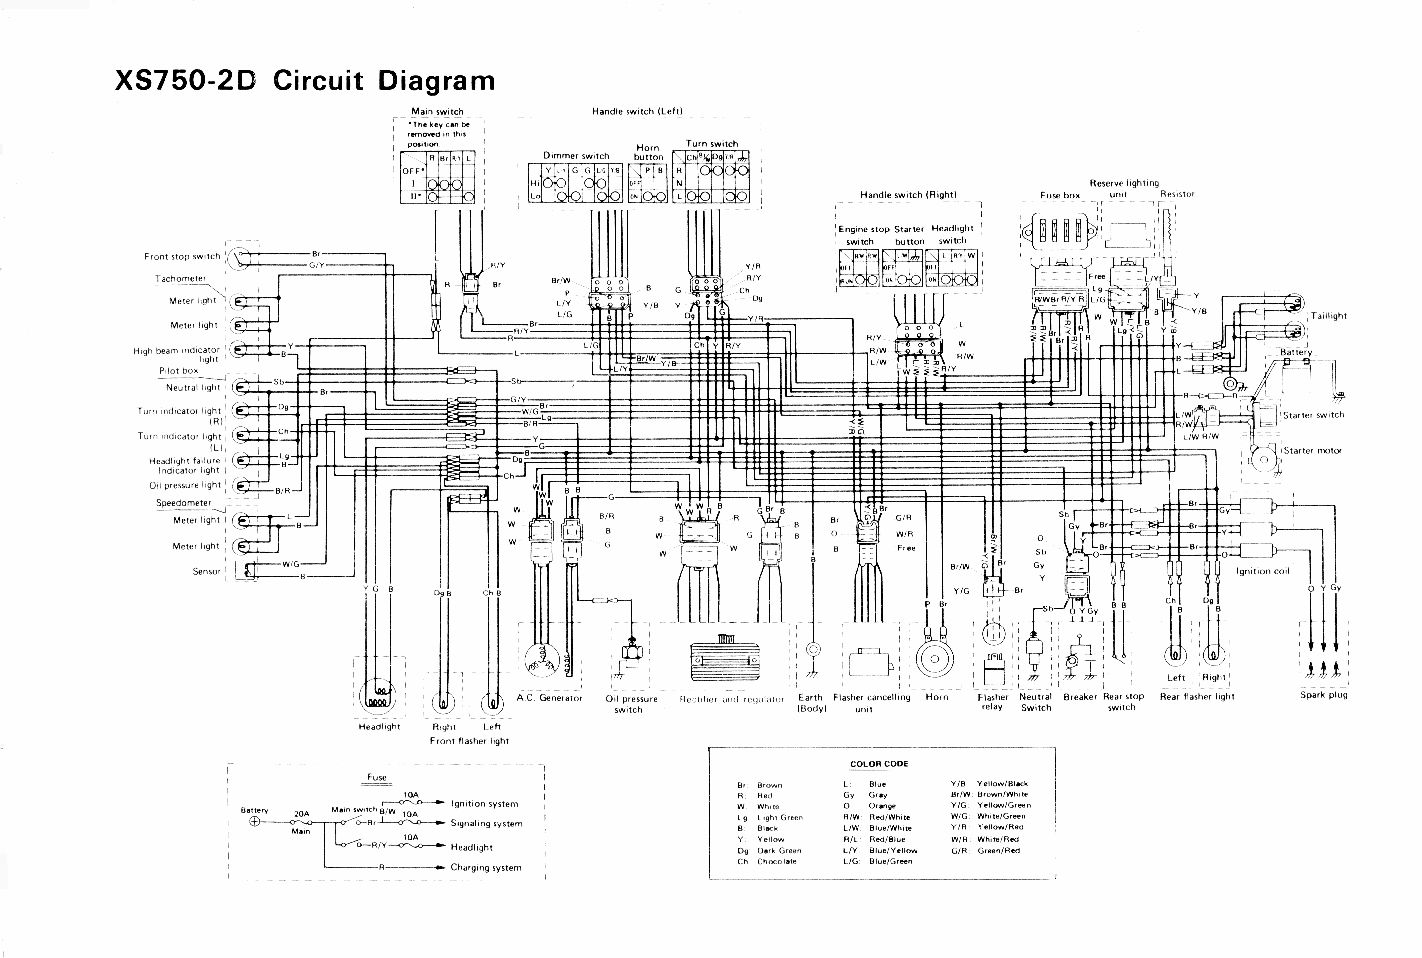 Yamaha Xs 750 Wiring Diagram Simple Schema 78 Dt 100 The Triples Community Workshop Electrical Xsr 700 For Xs750 2d